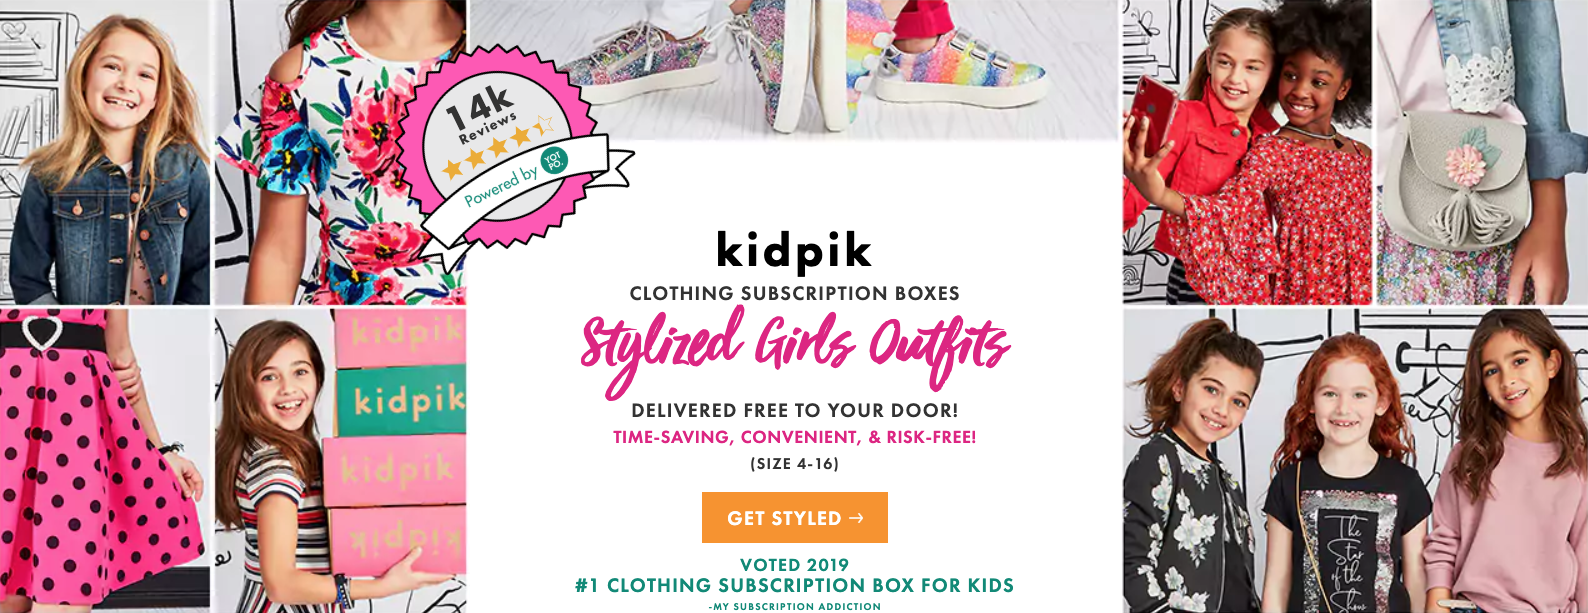 kidpik clothing subscription boxes for girls!